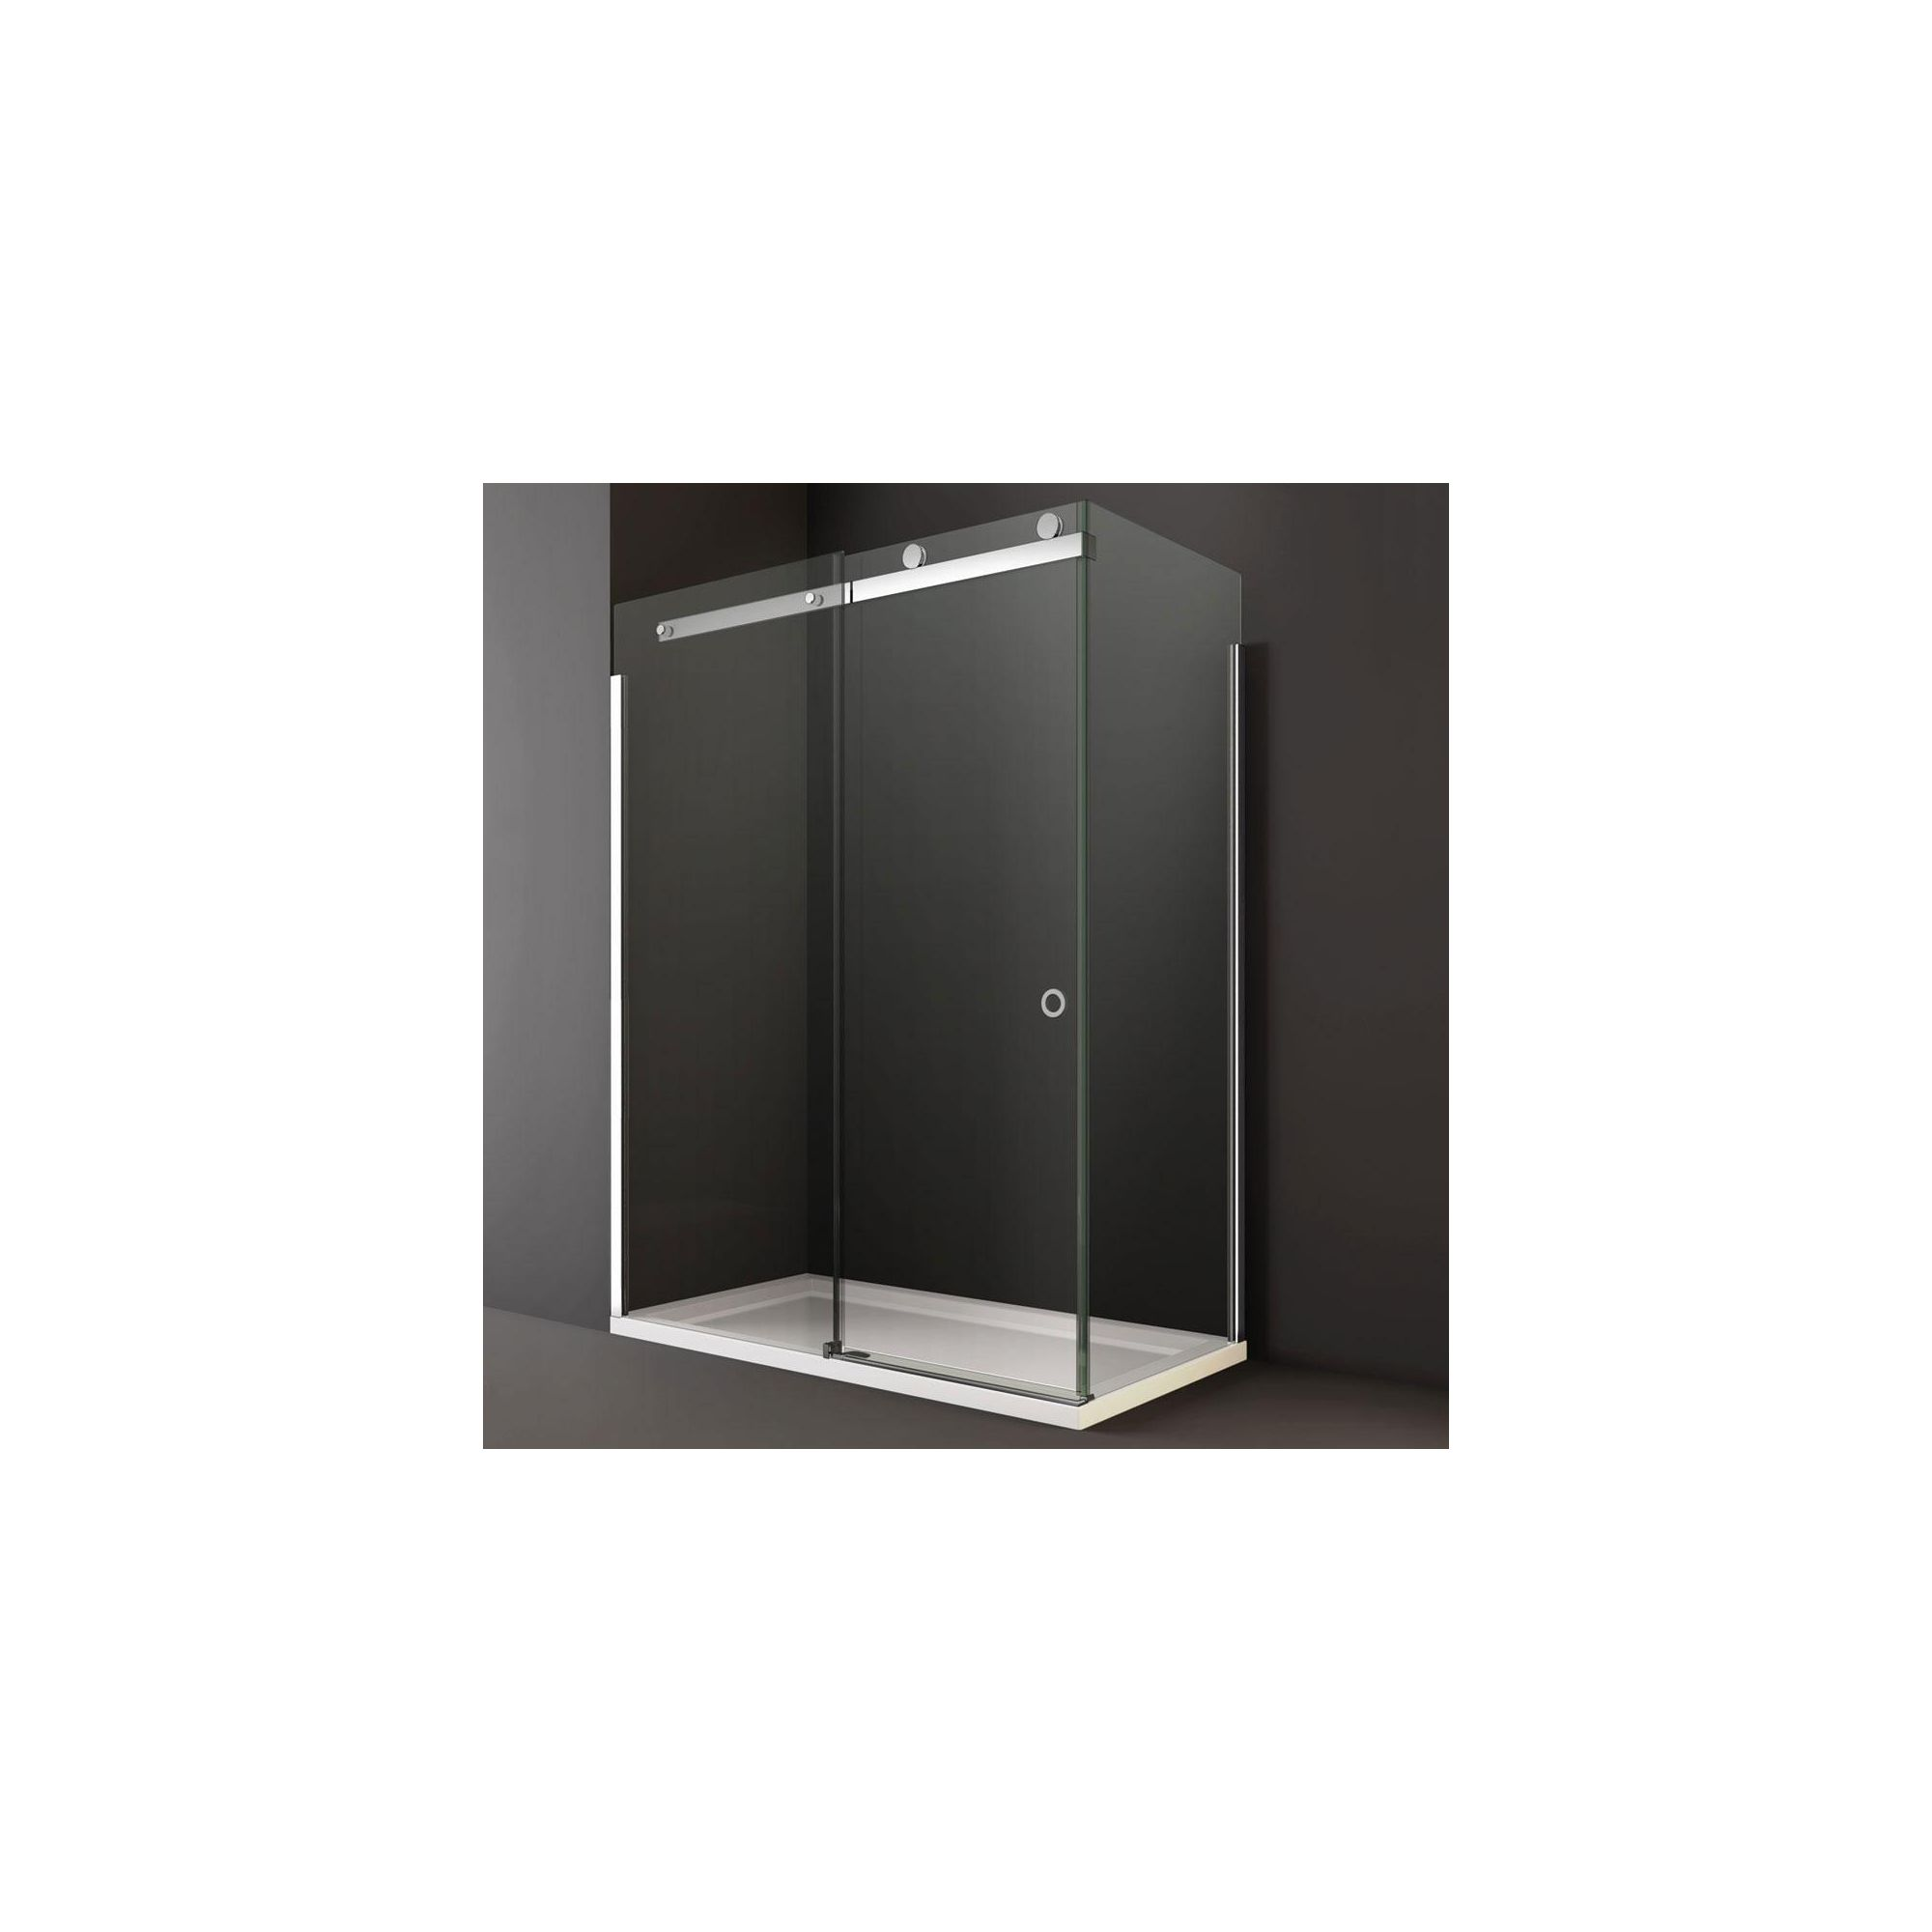 Merlyn Series 10 Sliding Shower Door, 1400mm Wide, 10mm Smoked Glass, Left Handed at Tesco Direct